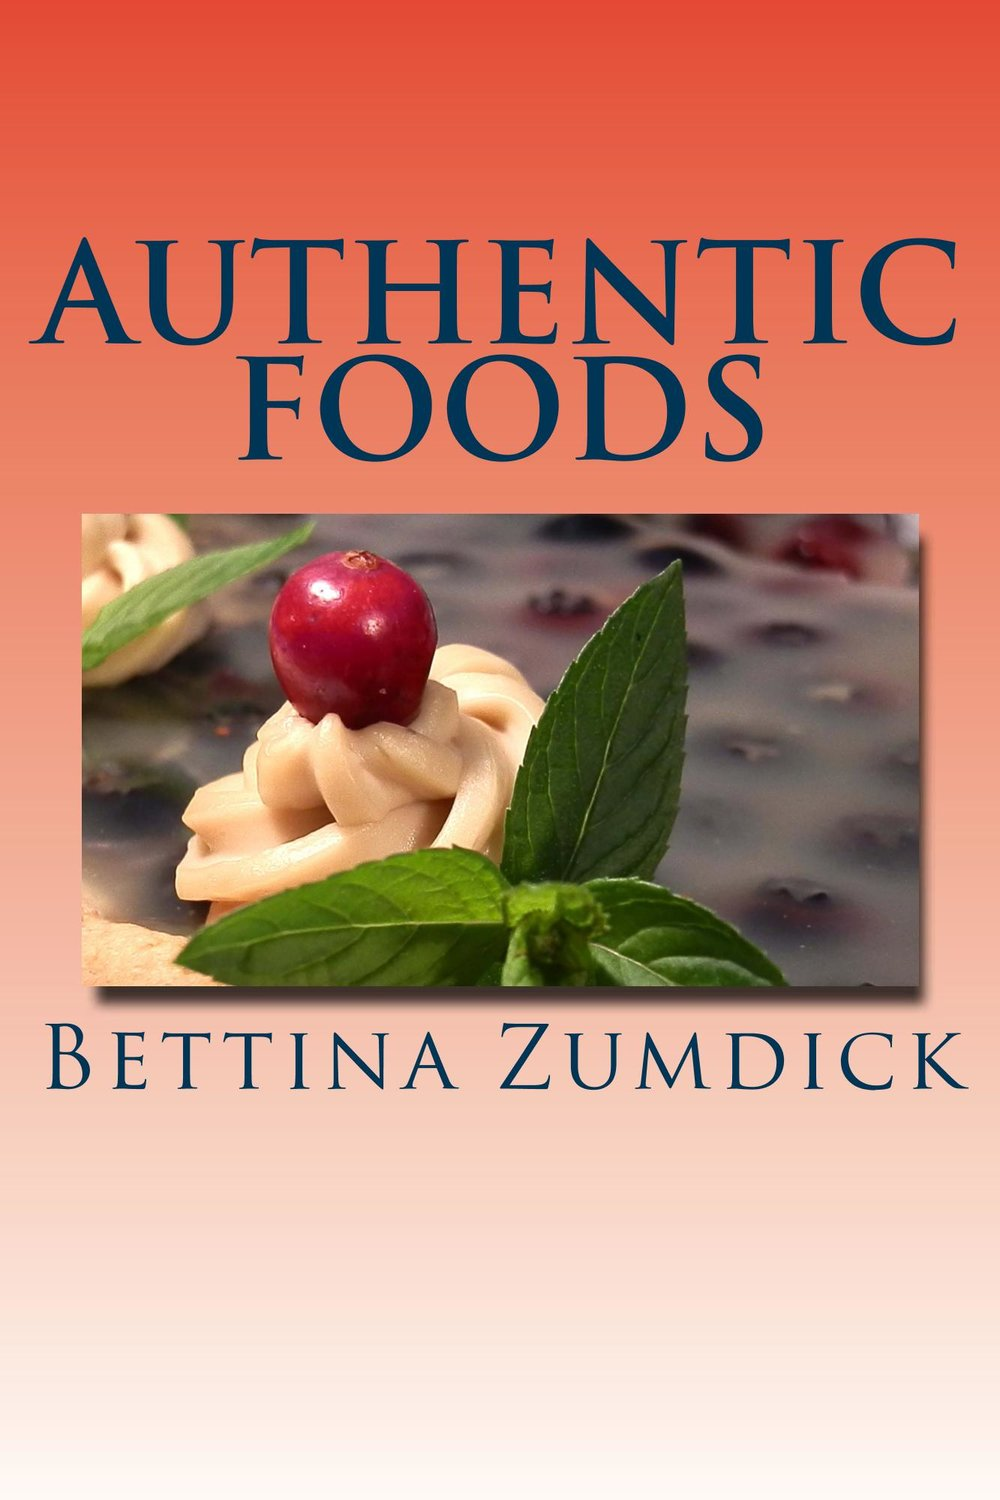 Authentic Foods